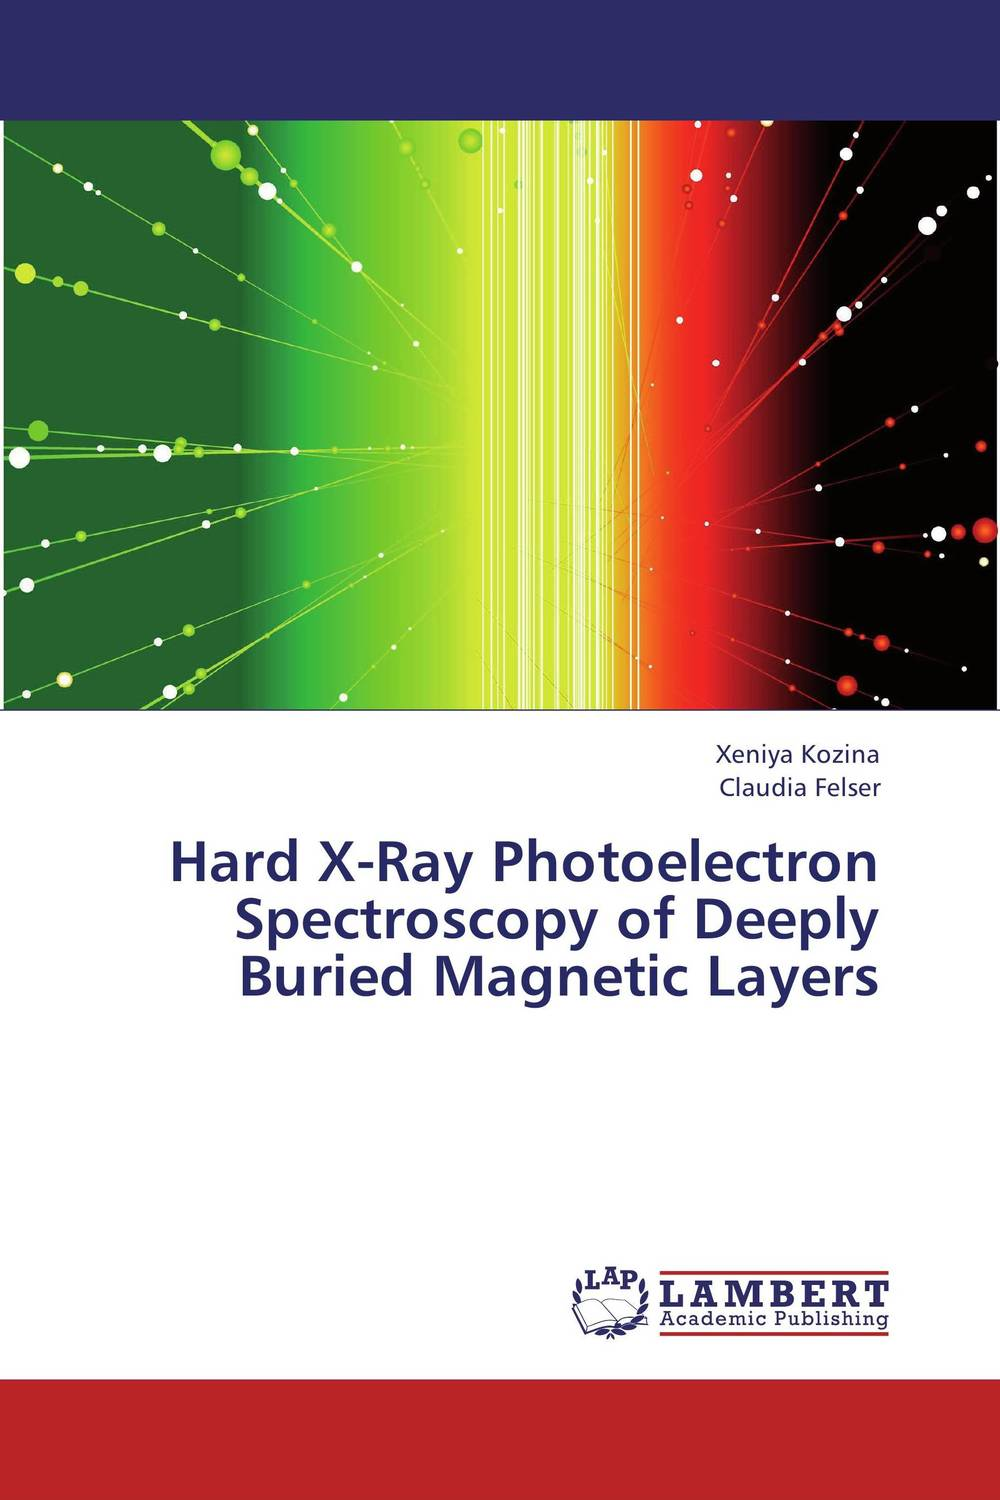 Hard X-Ray Photoelectron Spectroscopy of Deeply Buried Magnetic Layers relativistic theory of electron transport in magnetic layers